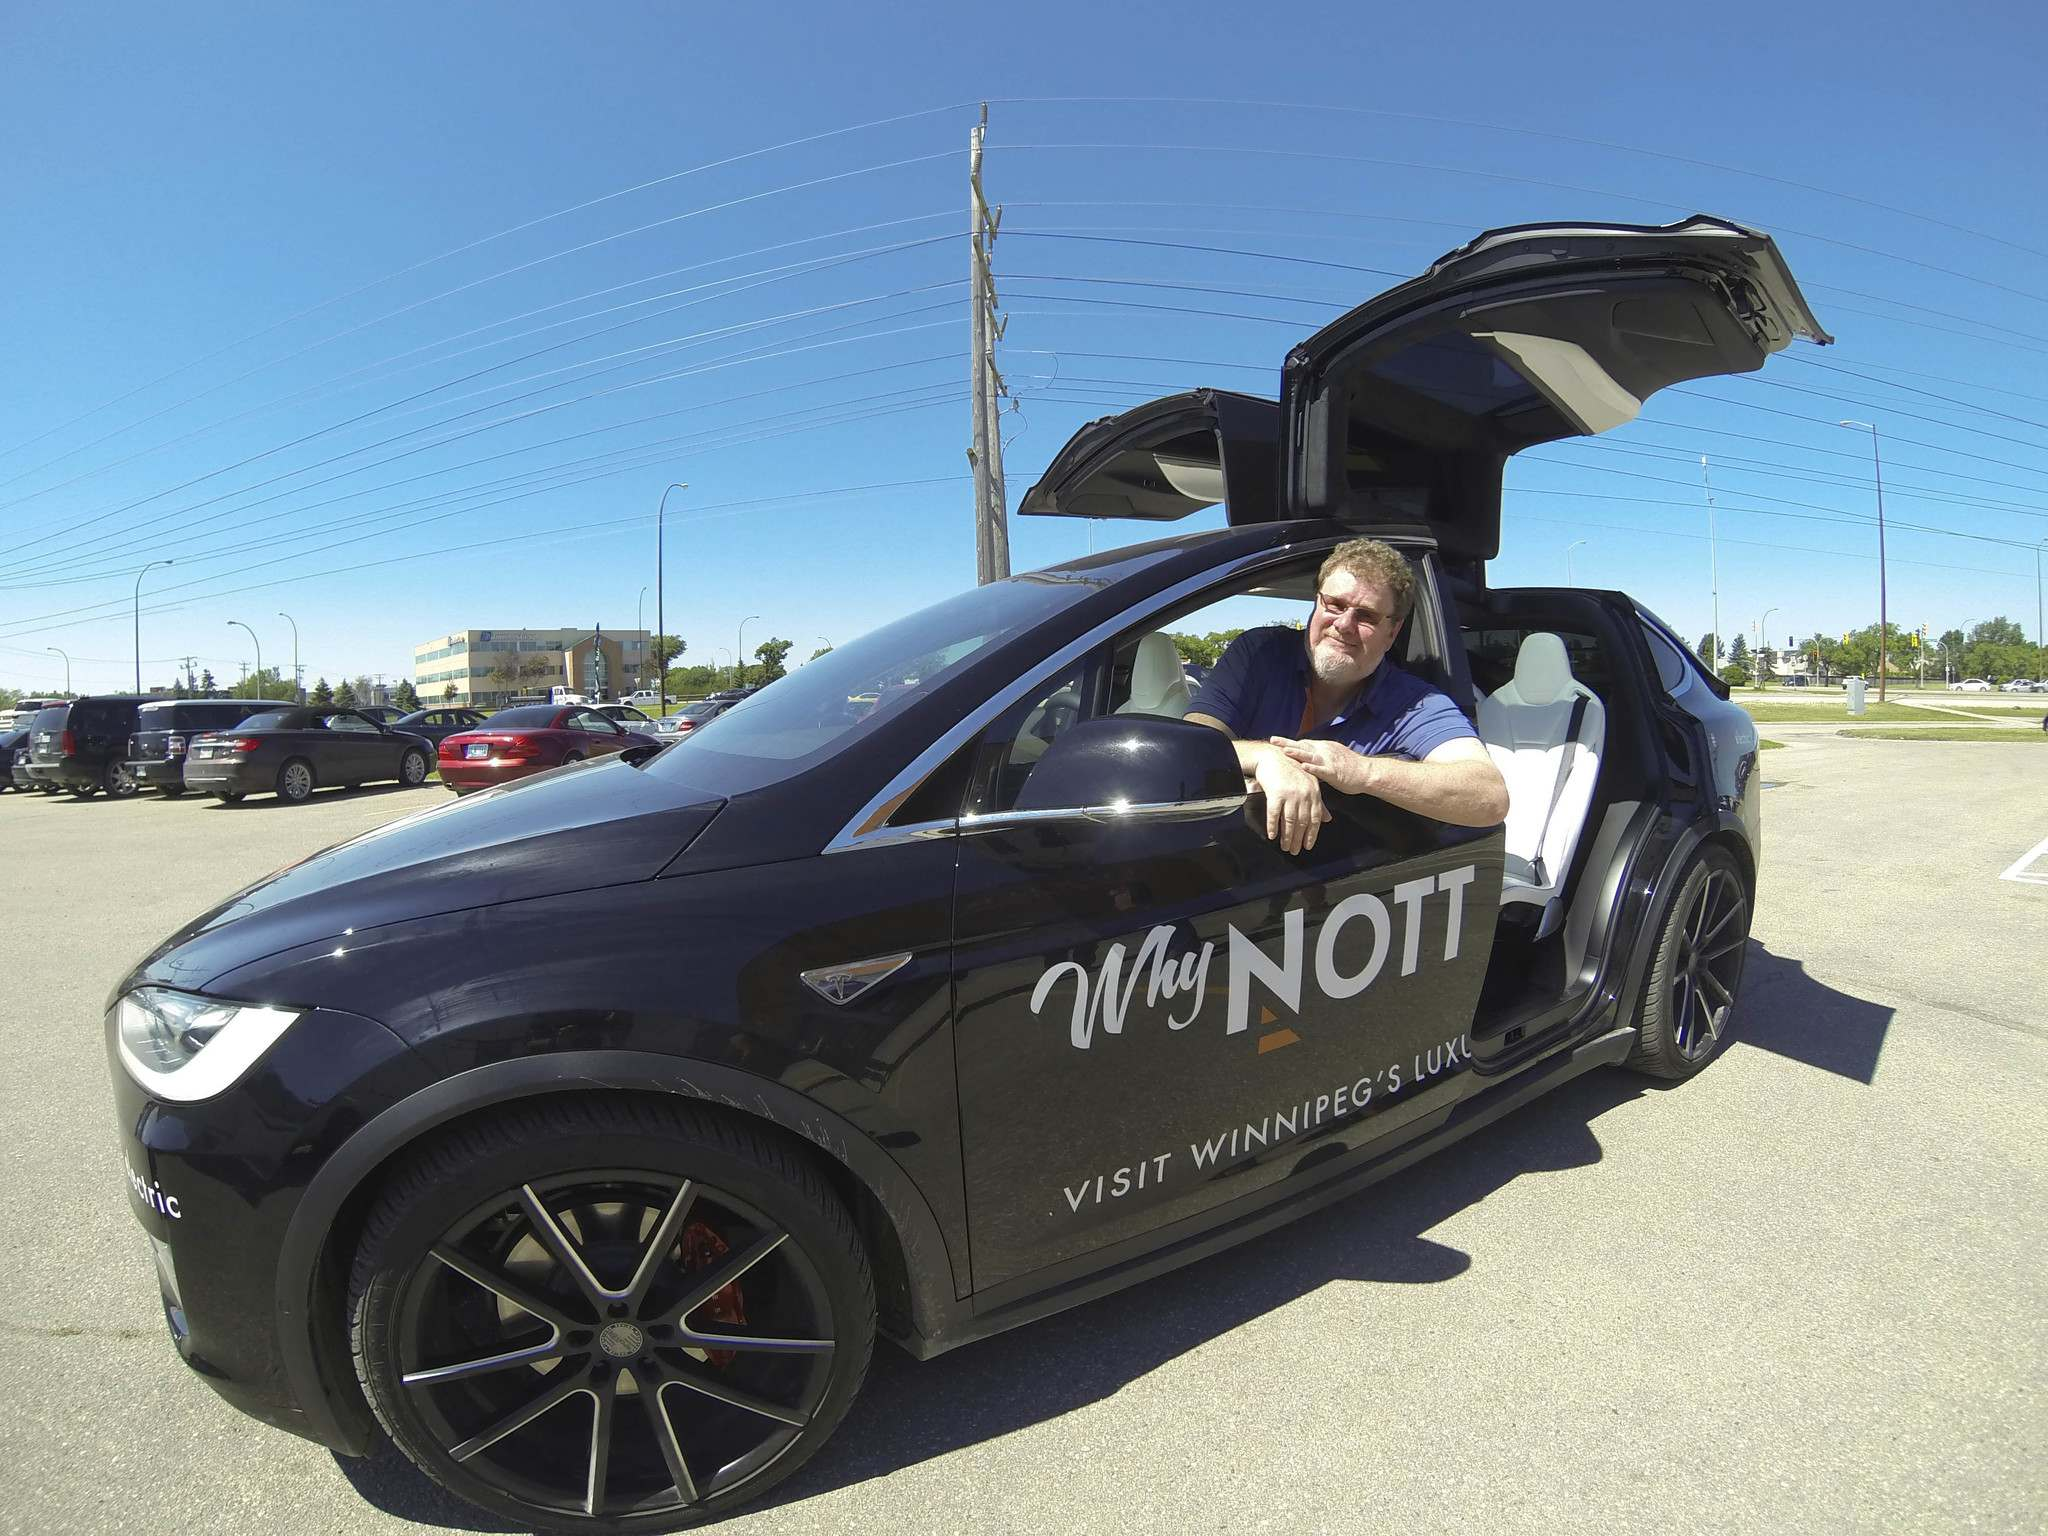 Tyler Walsh / Winnipeg Free Press Free Press</p><p>humour columnist Doug Speirs sits in the 2015 Tesla Model X at Nott Autocorp. The fully electric Tesla vehicle features autopilot mode which allows drivers to hand over control to the vehicle.</p>